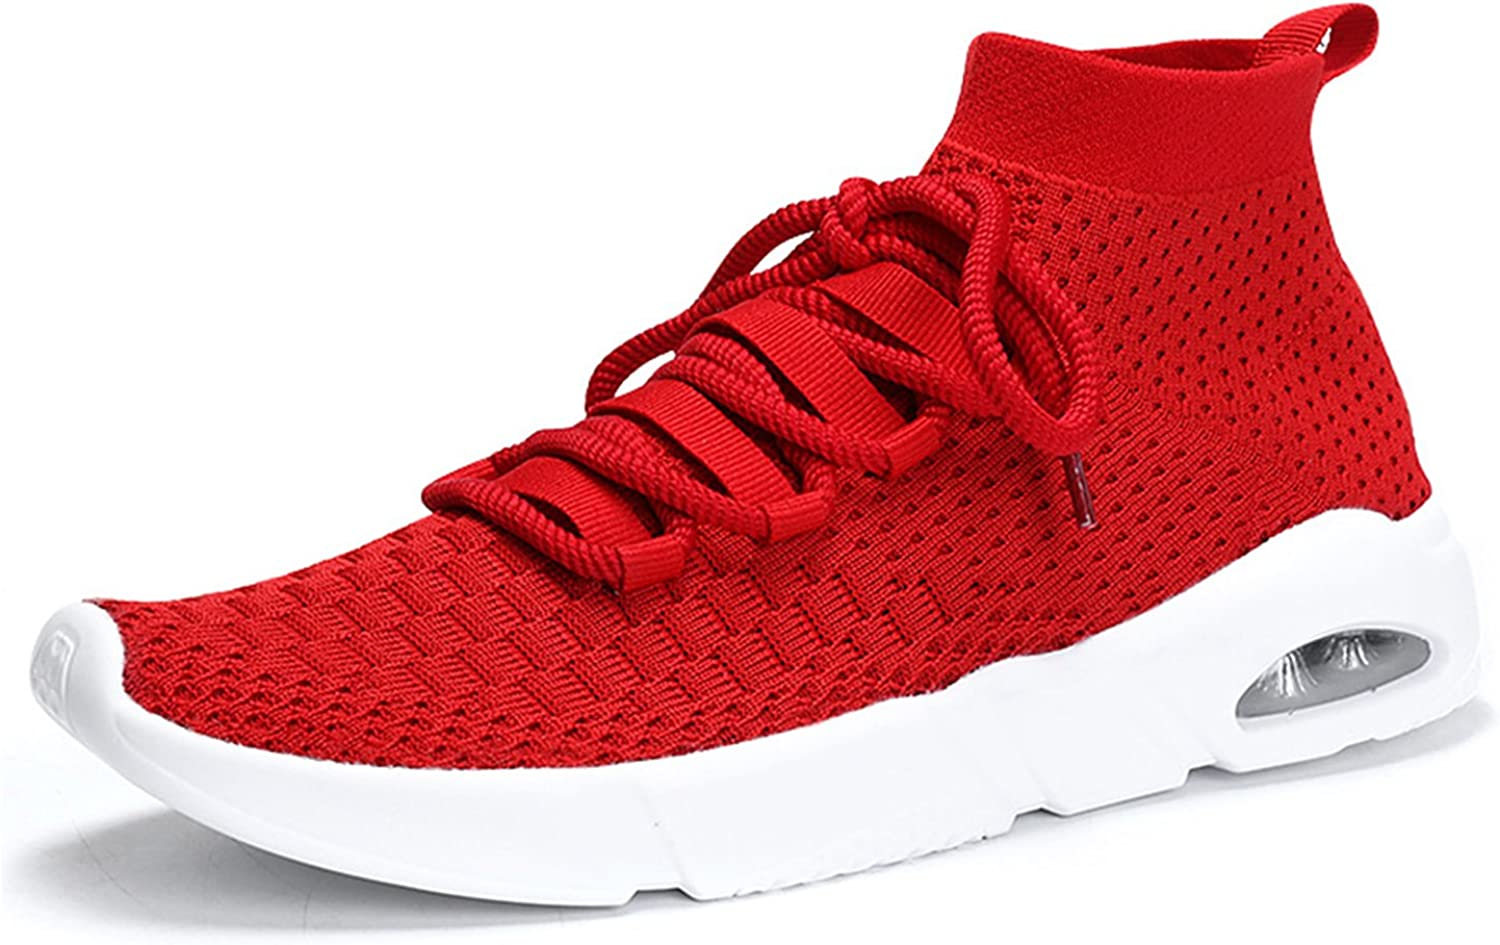 MOOKEY Men Trainers Sneakers Sport Sock Gym Fitness Breathable Running High Top Lace up Driving Weave shoes